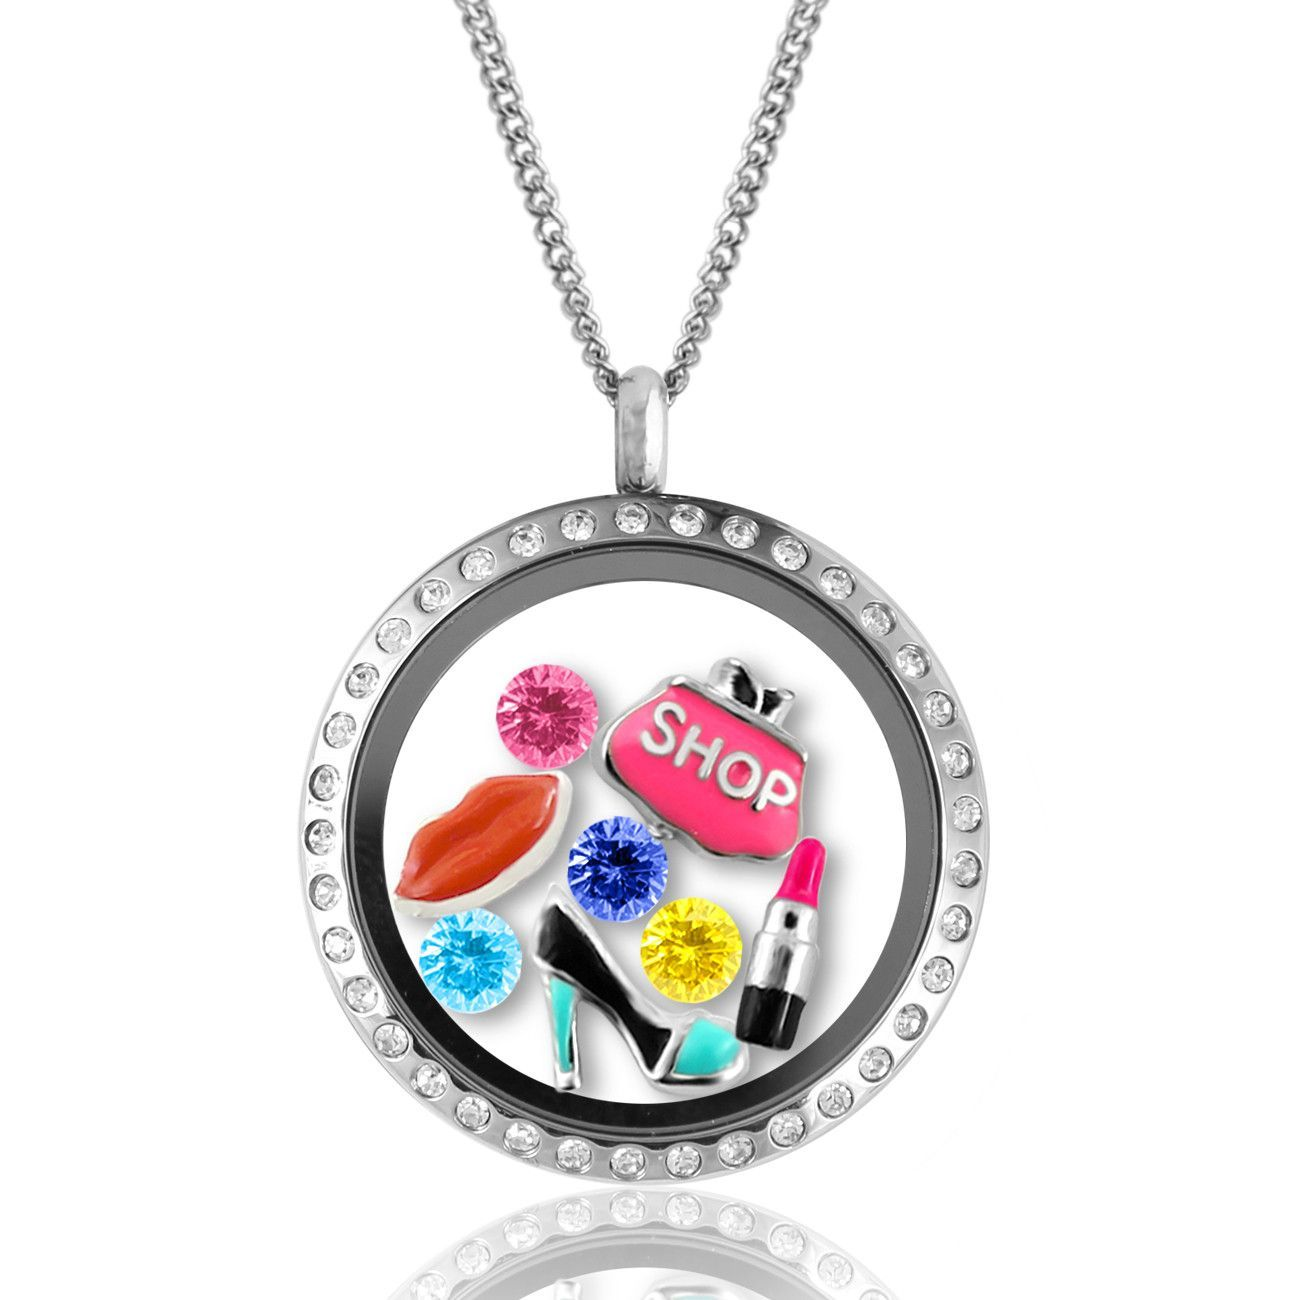 friend original product jandsjewellery friendship j lockets best by sister set star jewellery s necklace